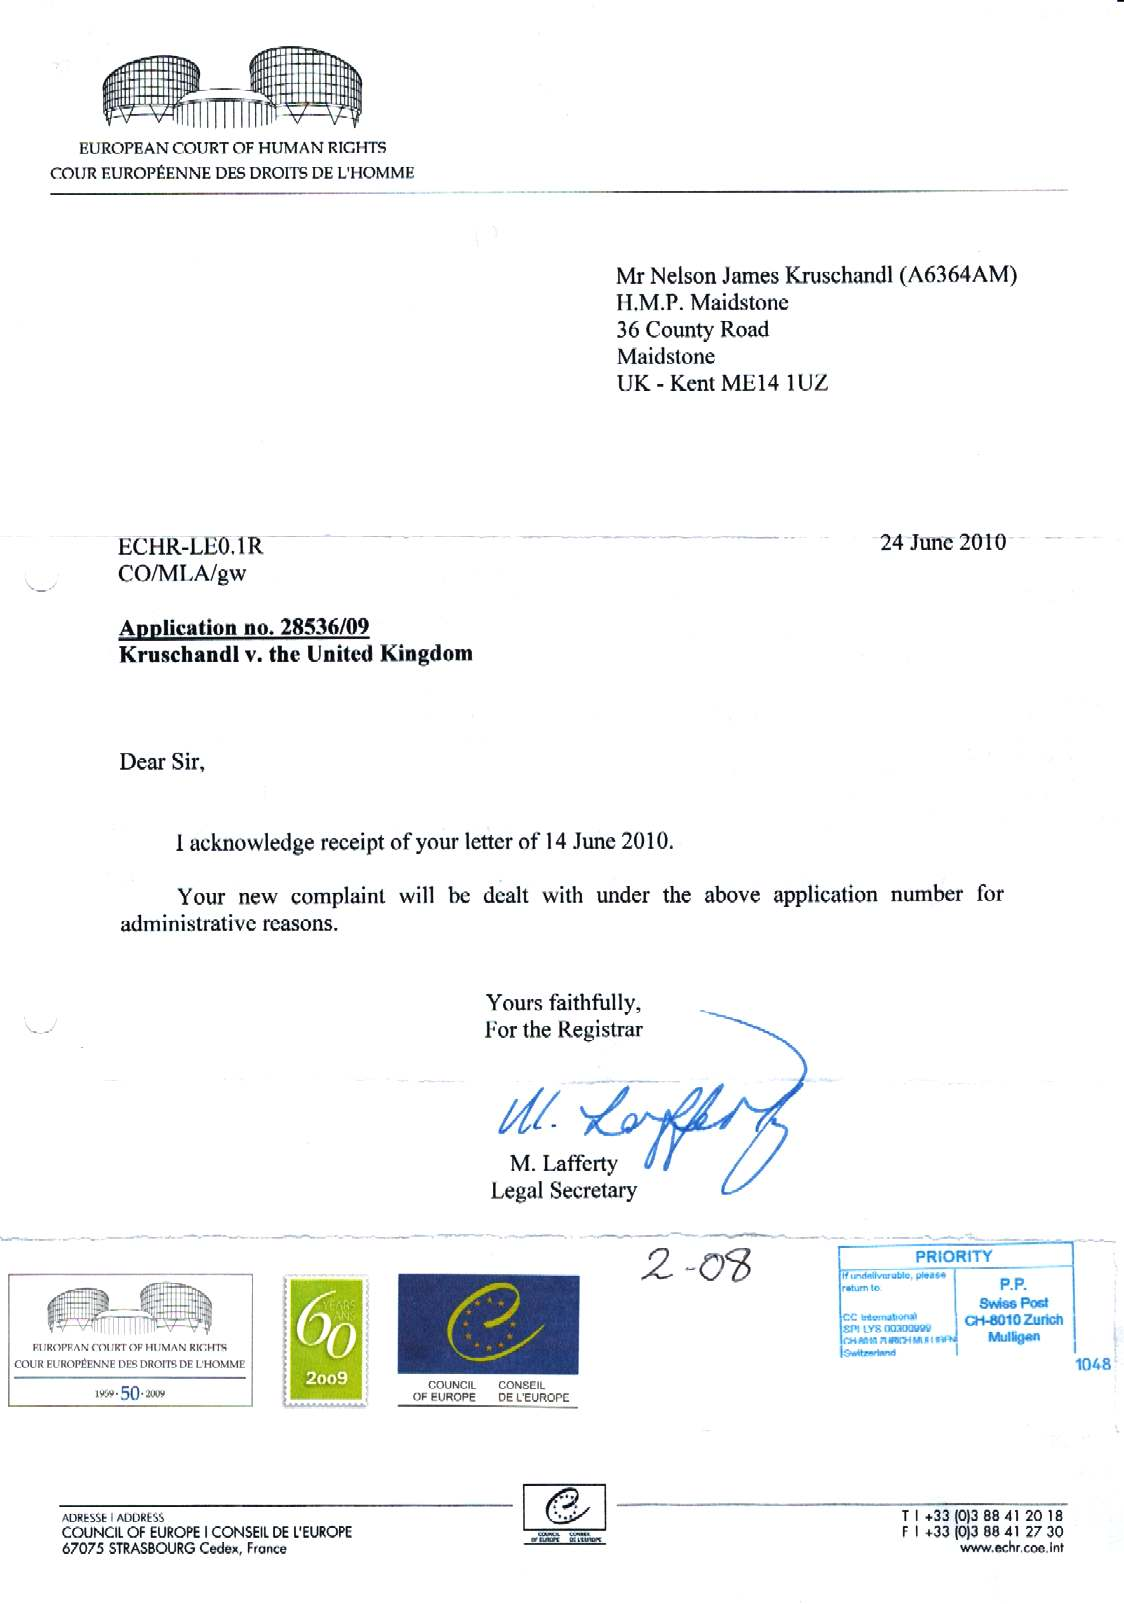 Application to the European Court of Human Rights June 2010